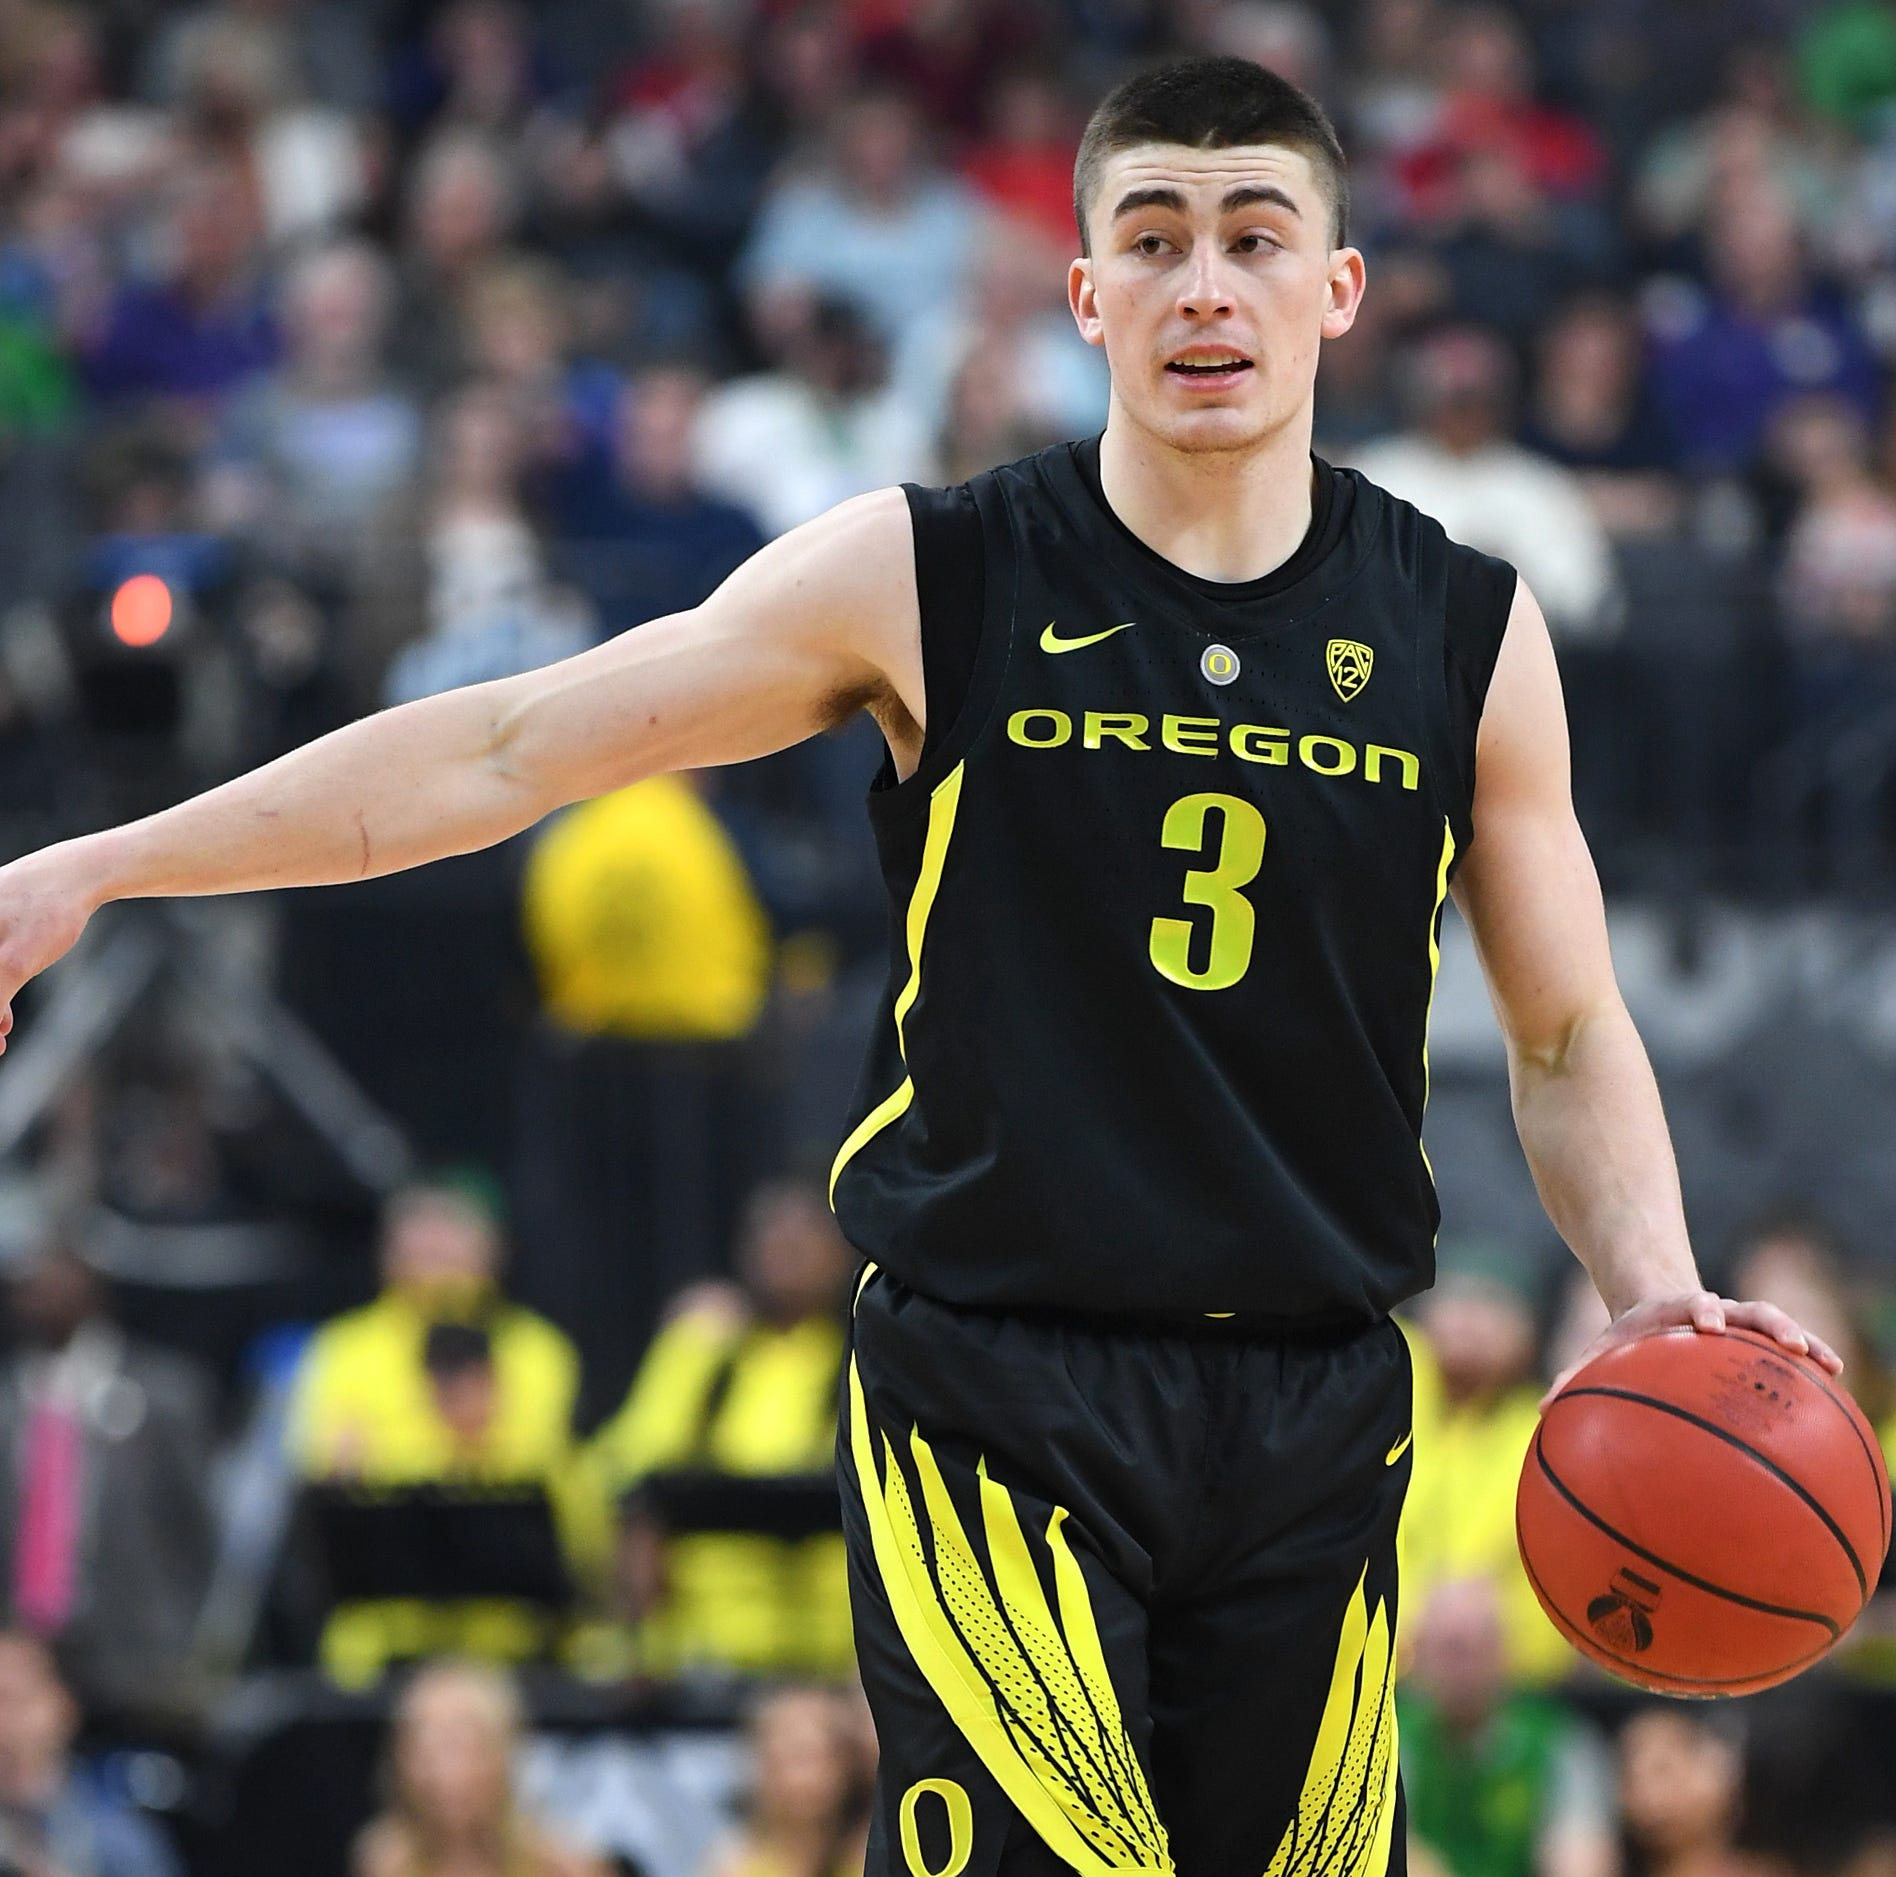 Oregon Ducks: 3 keys to beating Wisconsin in NCAA tournament